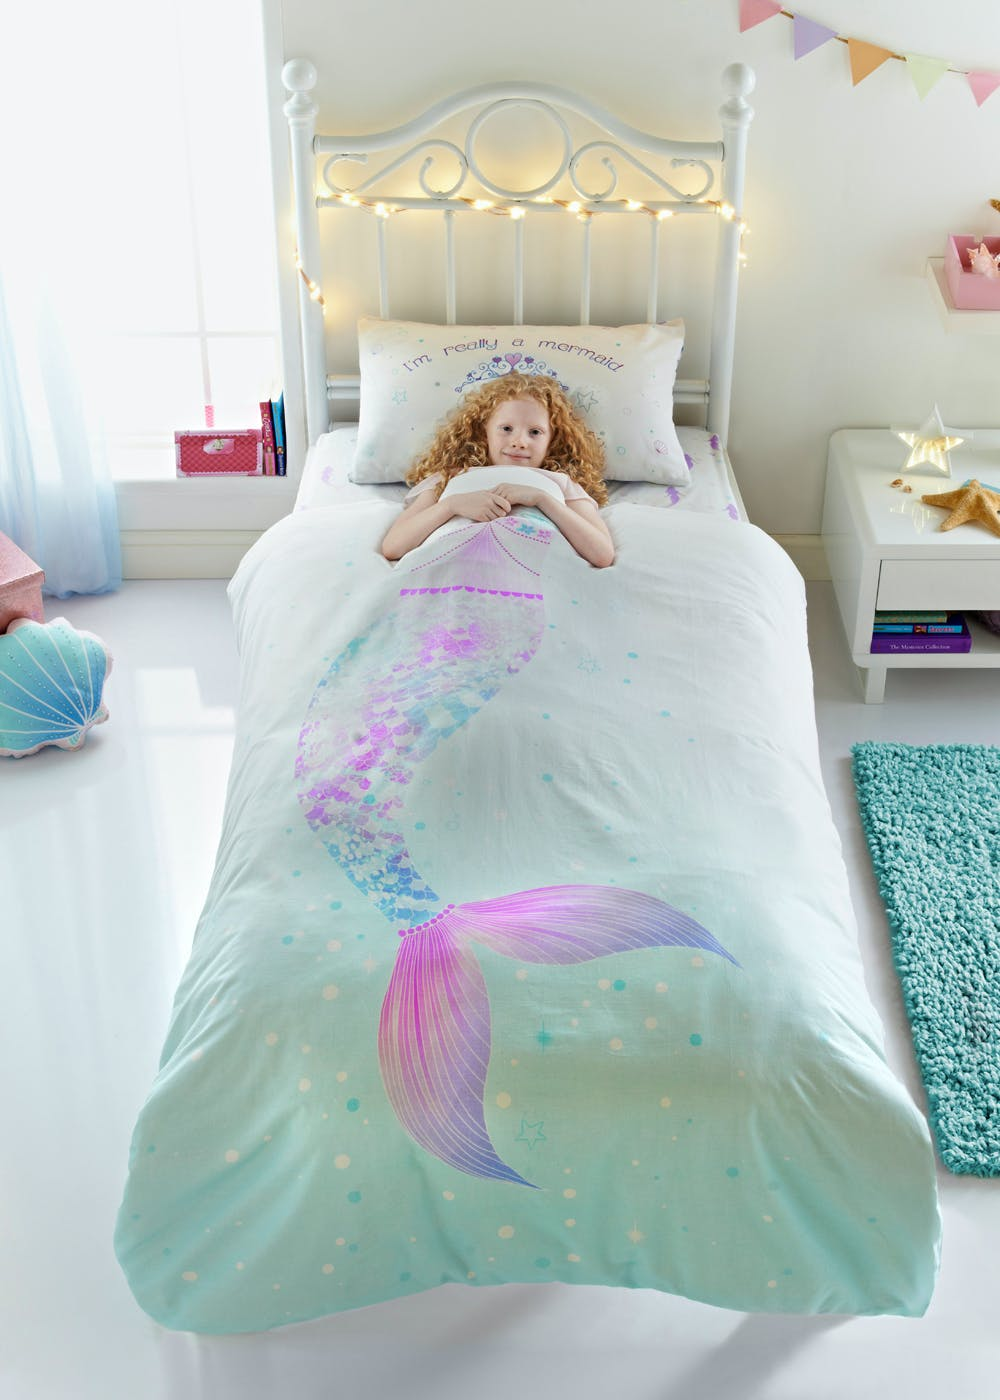 Unique Mermaid Bedding Collection Of Bed Decor